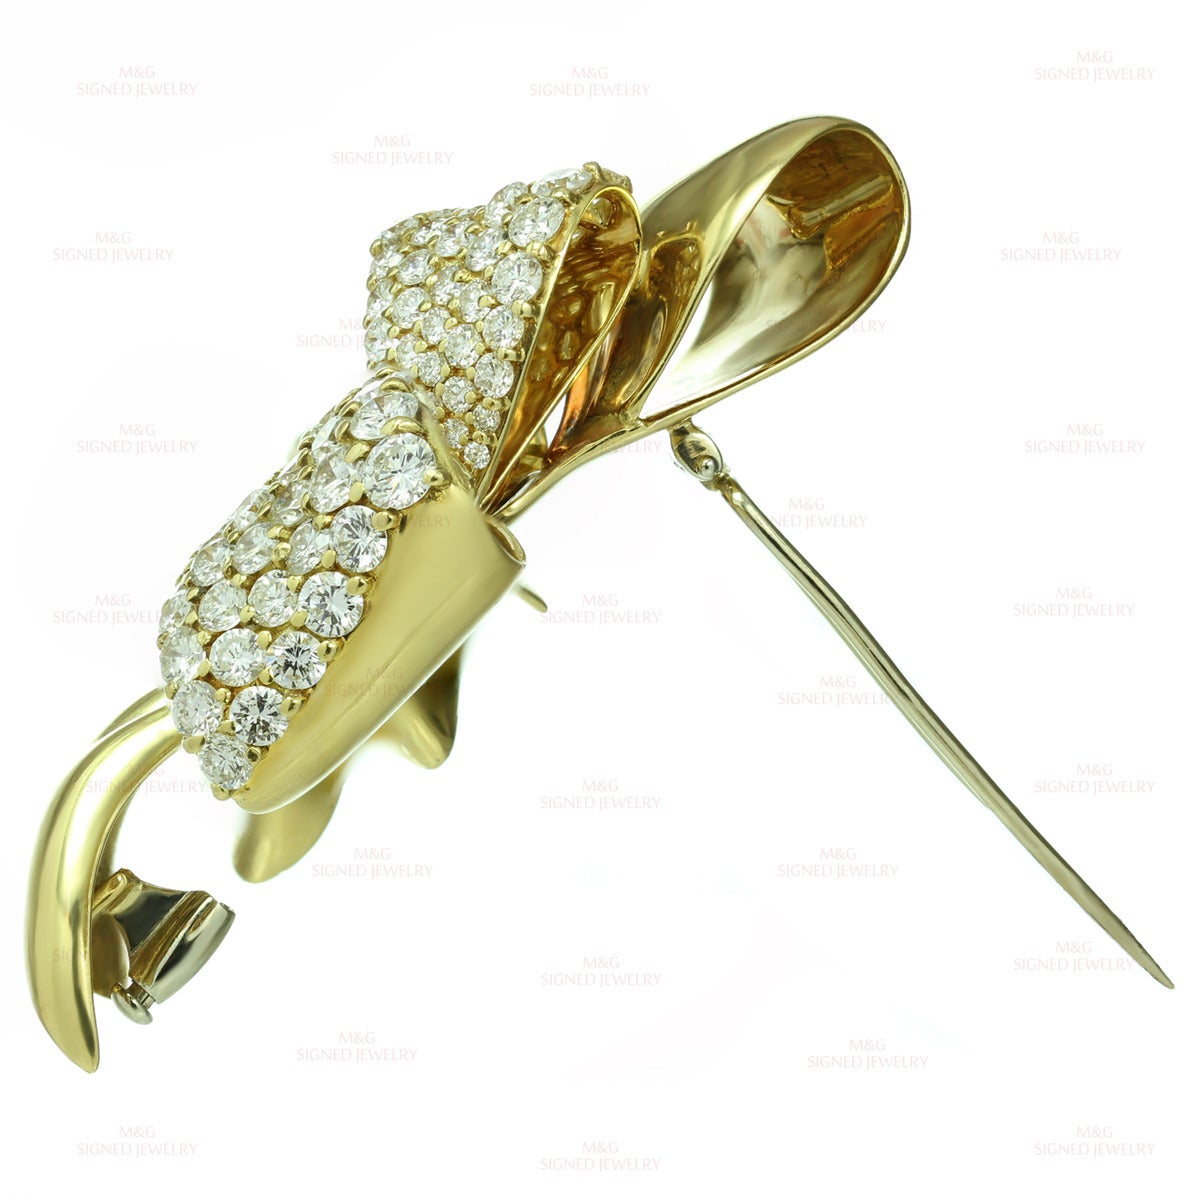 Chaumet Diamond Yellow Gold Bow Brooch Pin In Excellent Condition For Sale In New York, NY